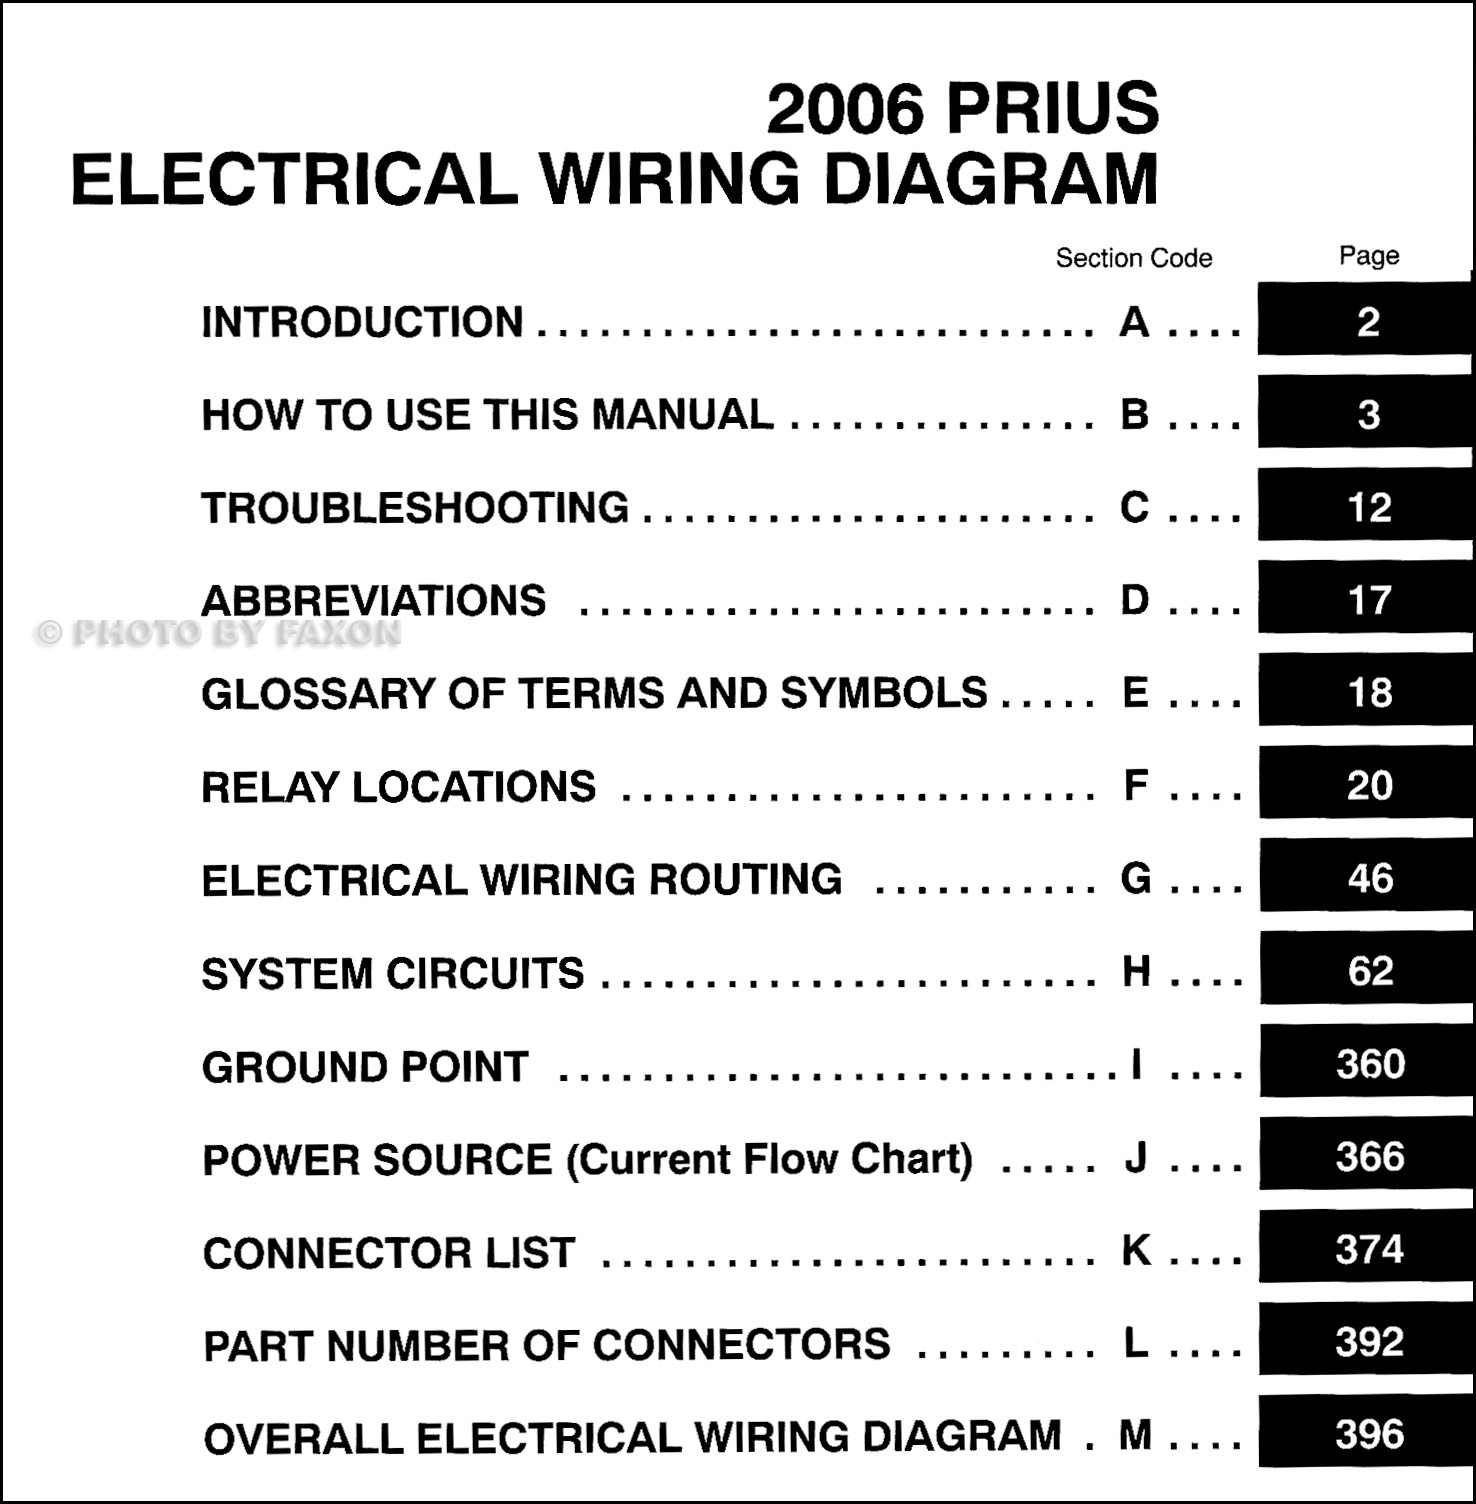 Toyota Wiring Diagram Abbreviations 35 Images Chevy Acronyms 2006toyotapriusowd Toc 2006 Prius Manual Original At Cita